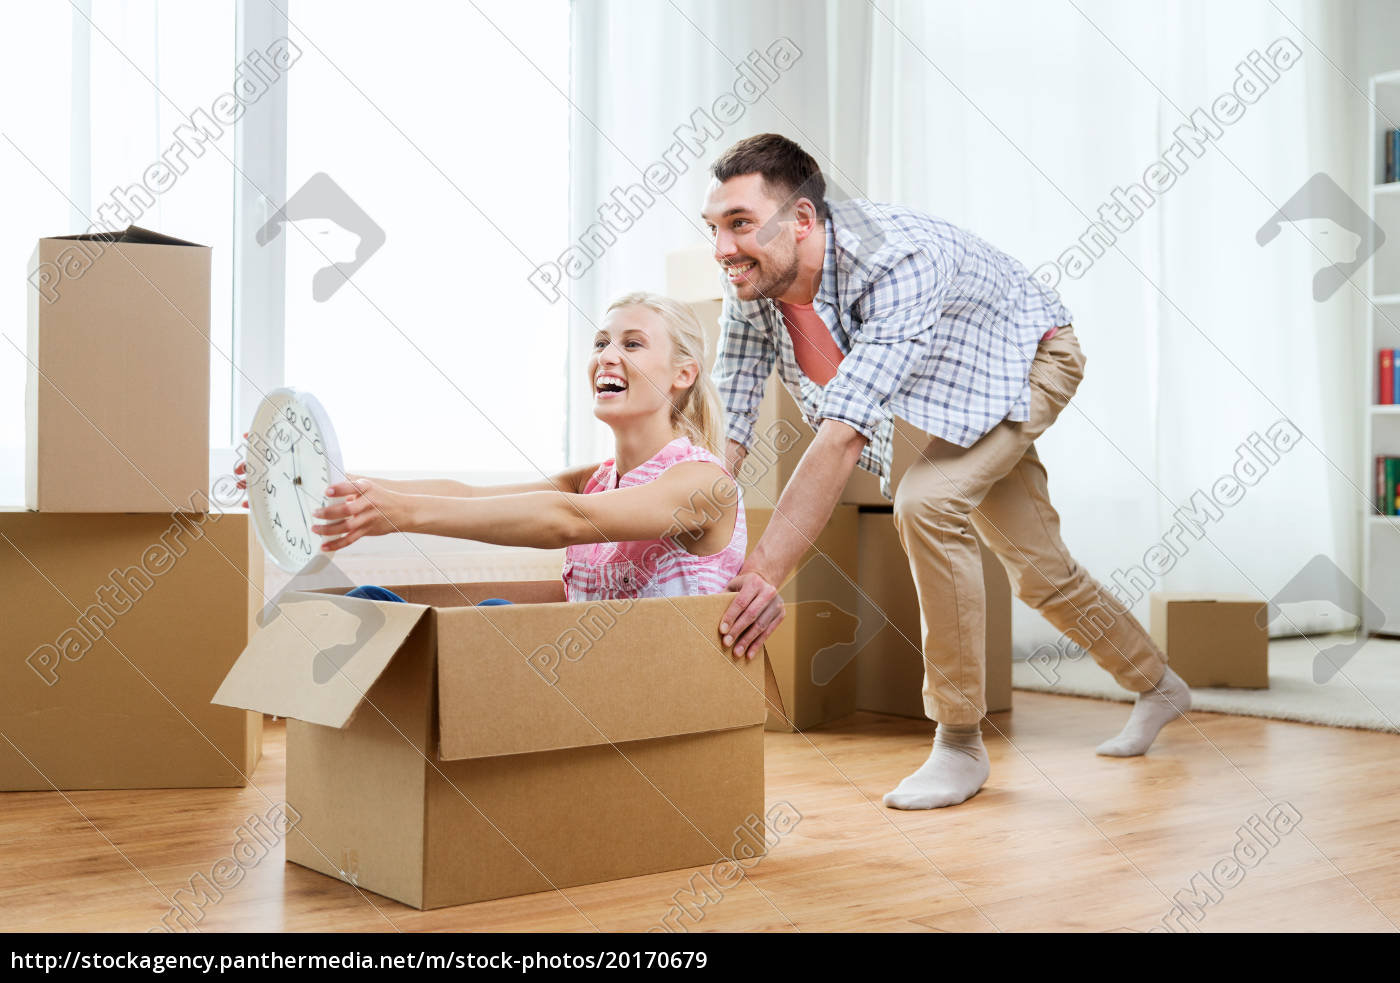 couple, with, cardboard, boxes, having, fun - 20170679